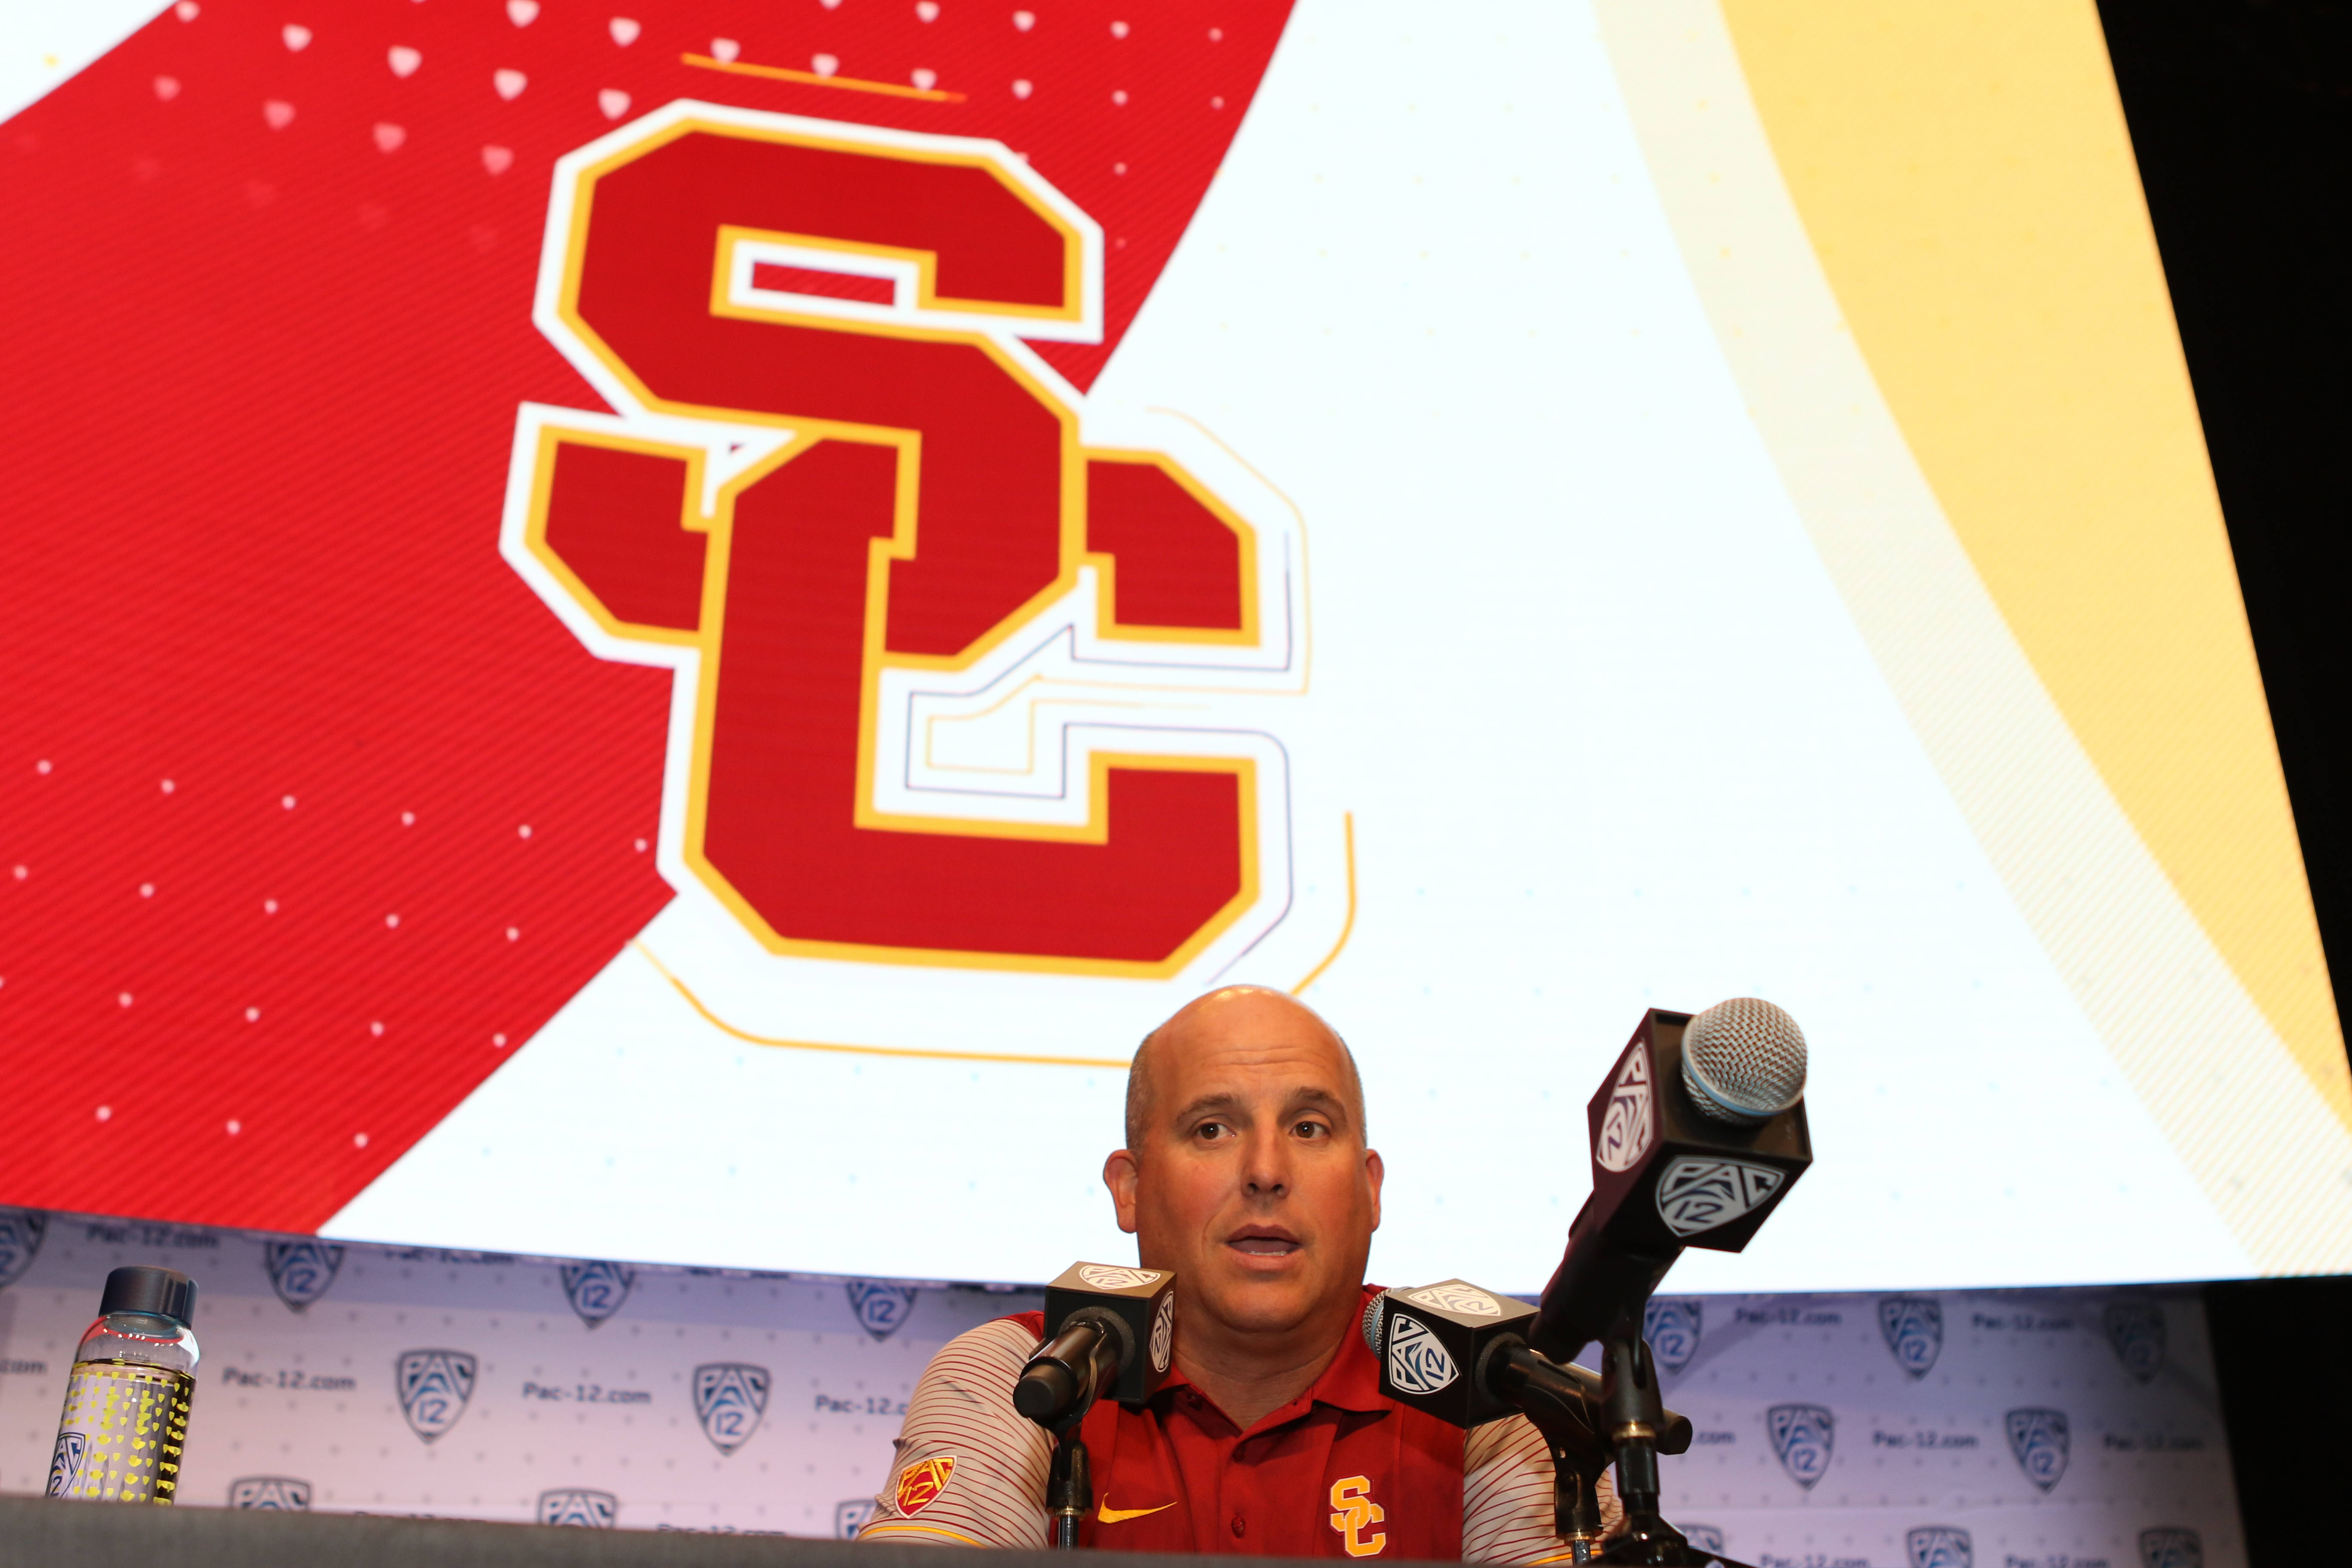 USC Head Coach Clay Helton during the PAC-12 Football Media Day 2016. Live at Ray Dolby Ballroom at the Hollywood and Highland Entertainment Center in Los Angeles, Ca. on July 14, 2016 (Photo by Jevone Moore/Full Image 360)